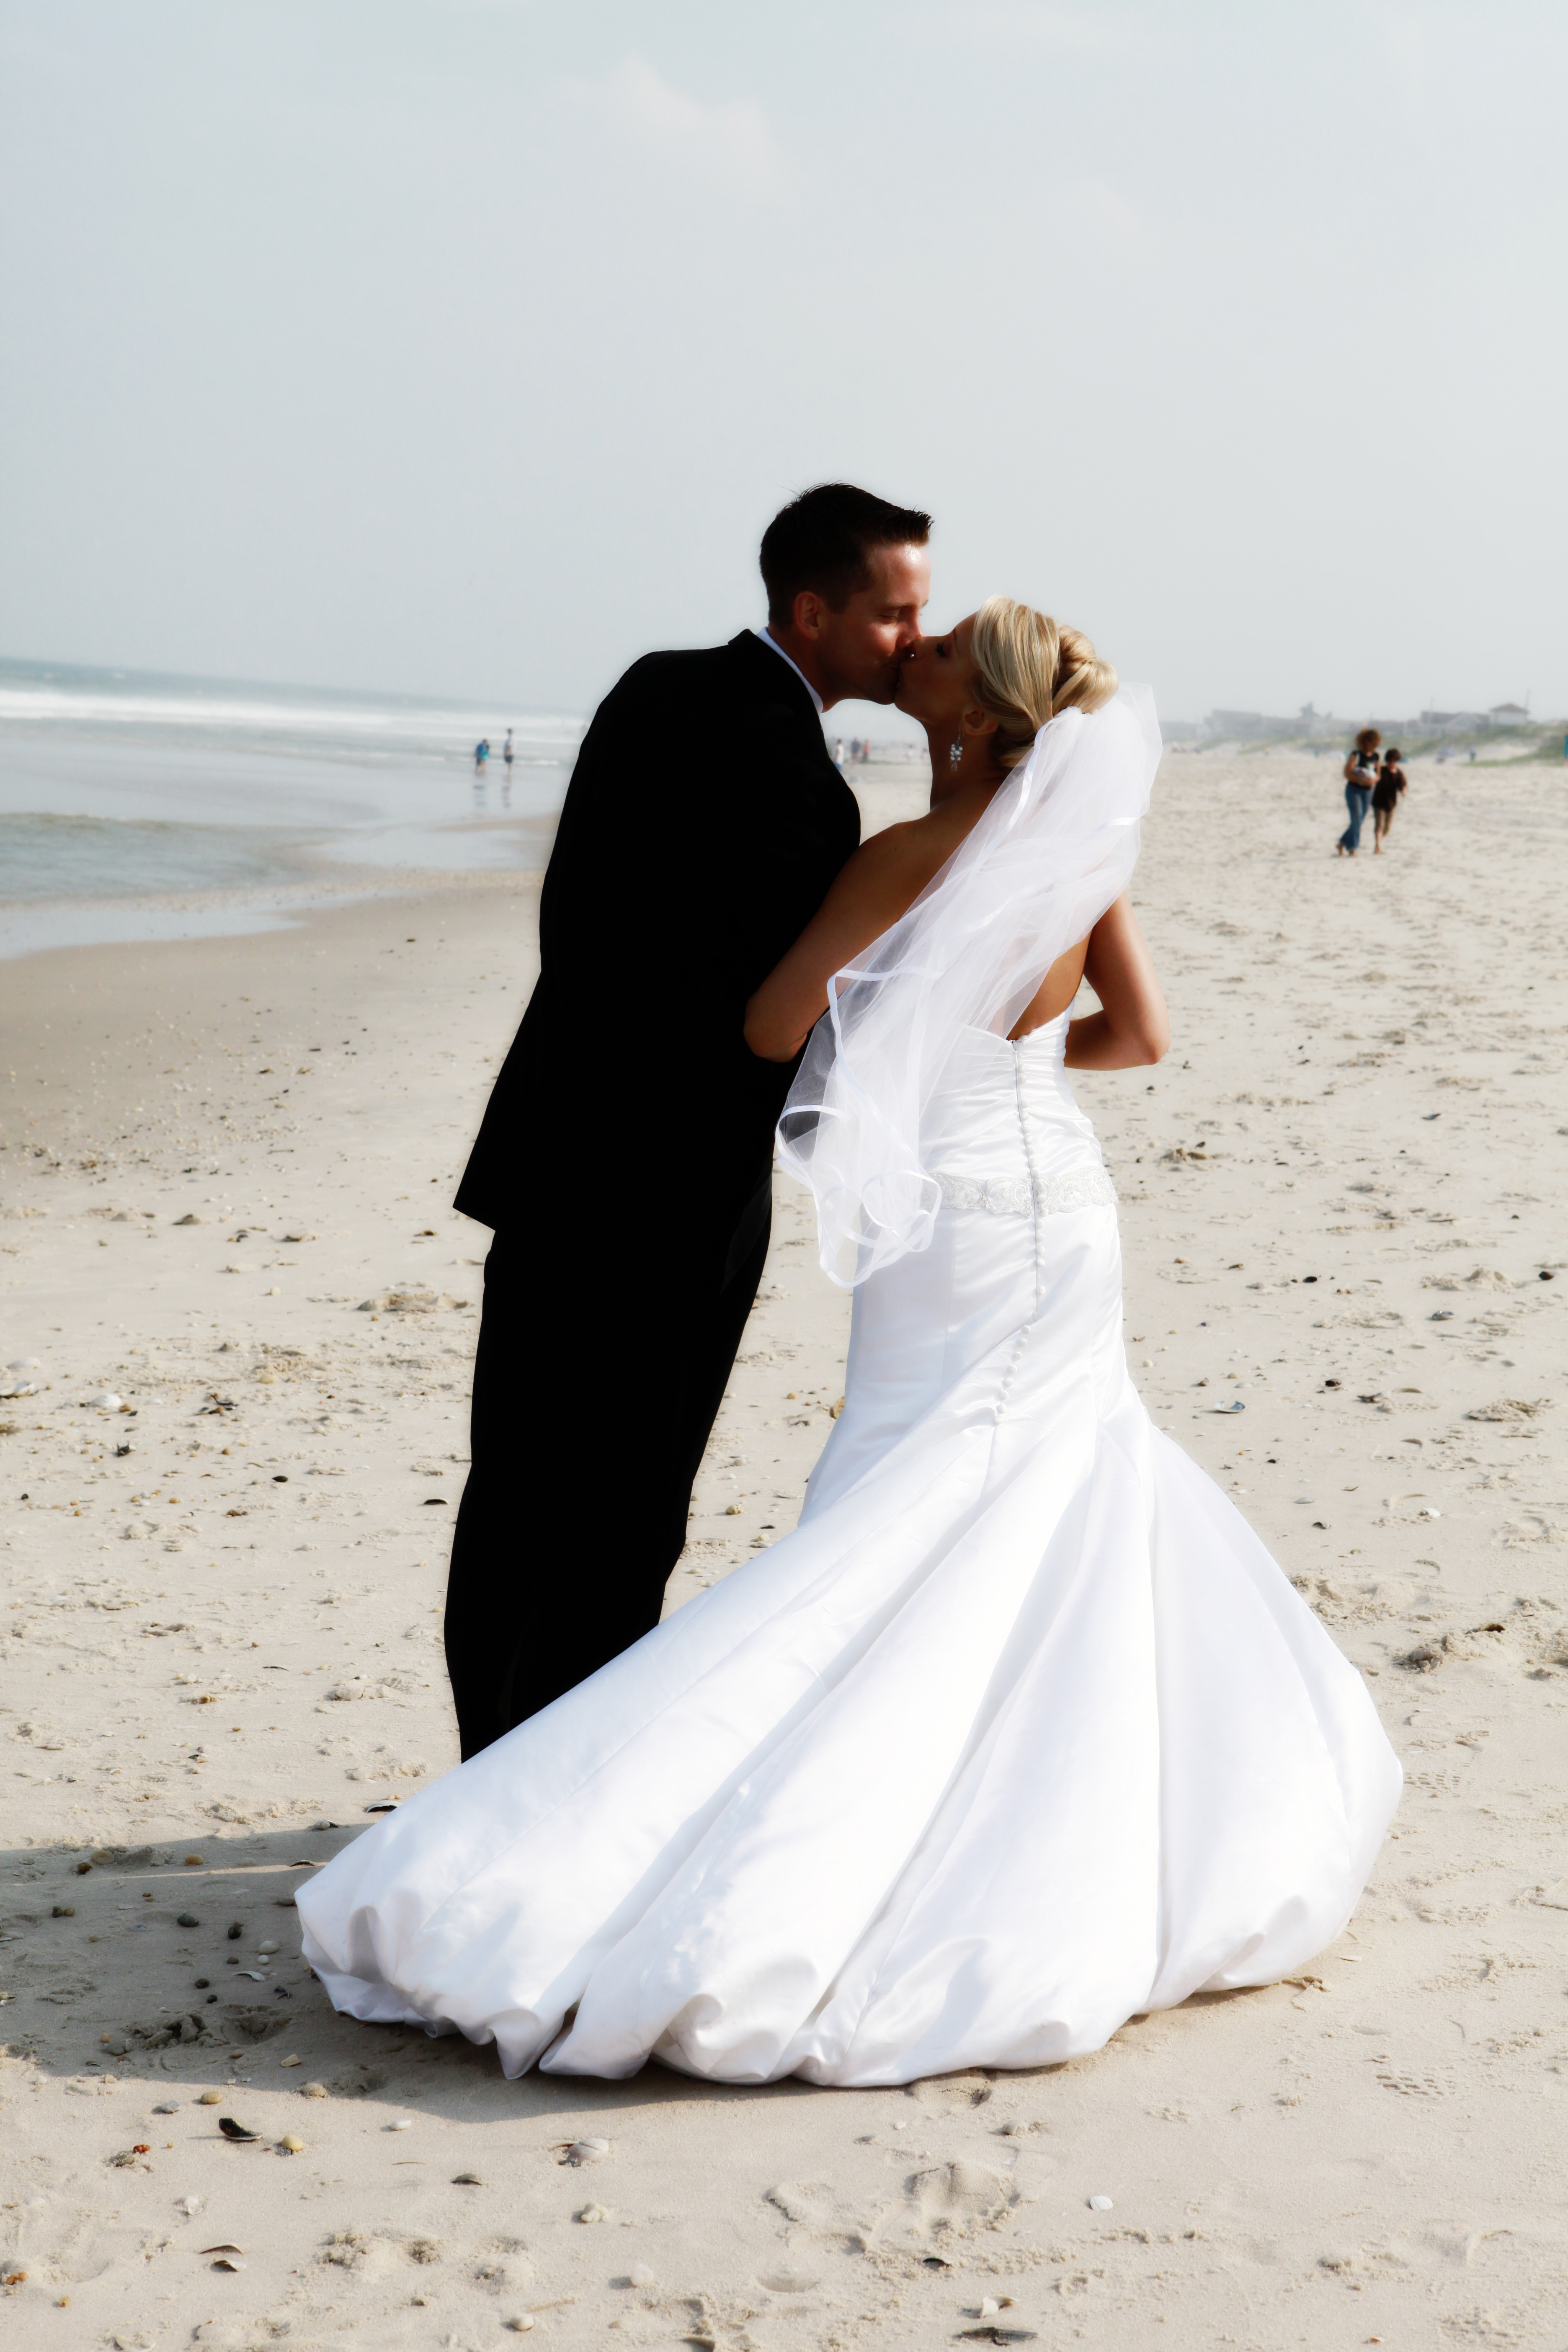 Wedding Dresses, Beach Wedding Dresses, Fashion, dress, Beach